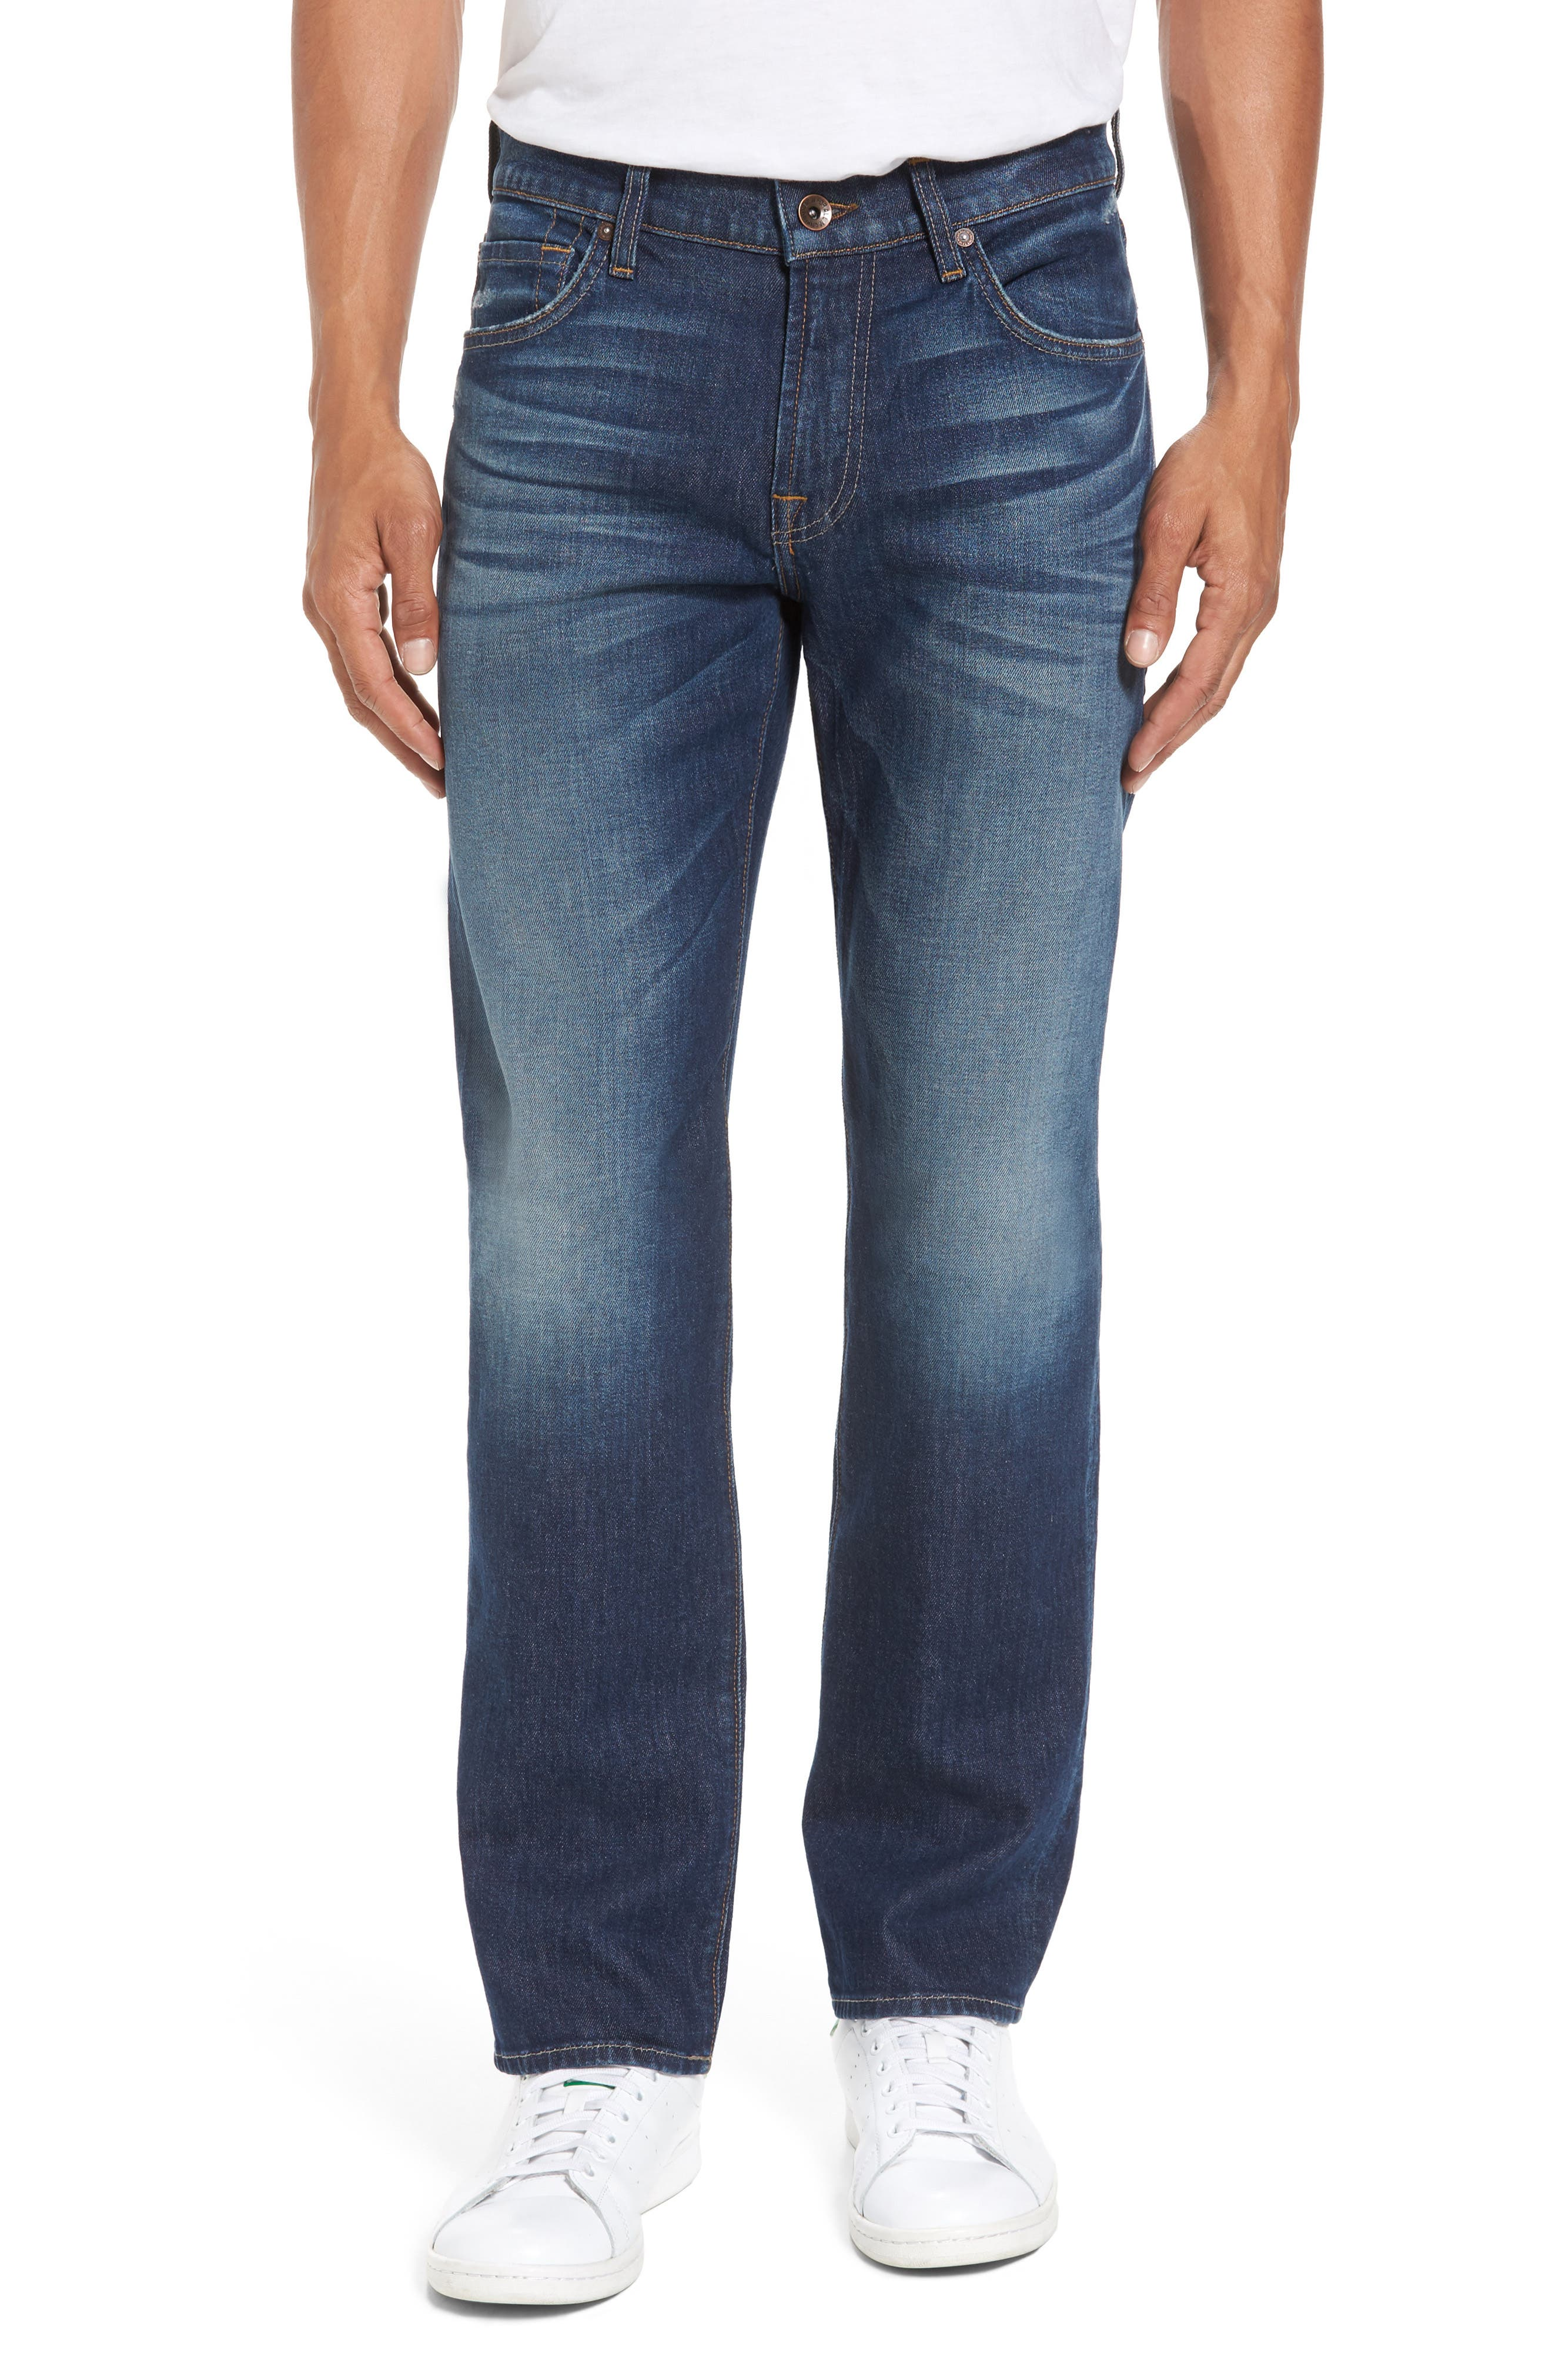 Main Image - 7 For All Mankind® Slimmy Slim Fit Jeans (Venture)